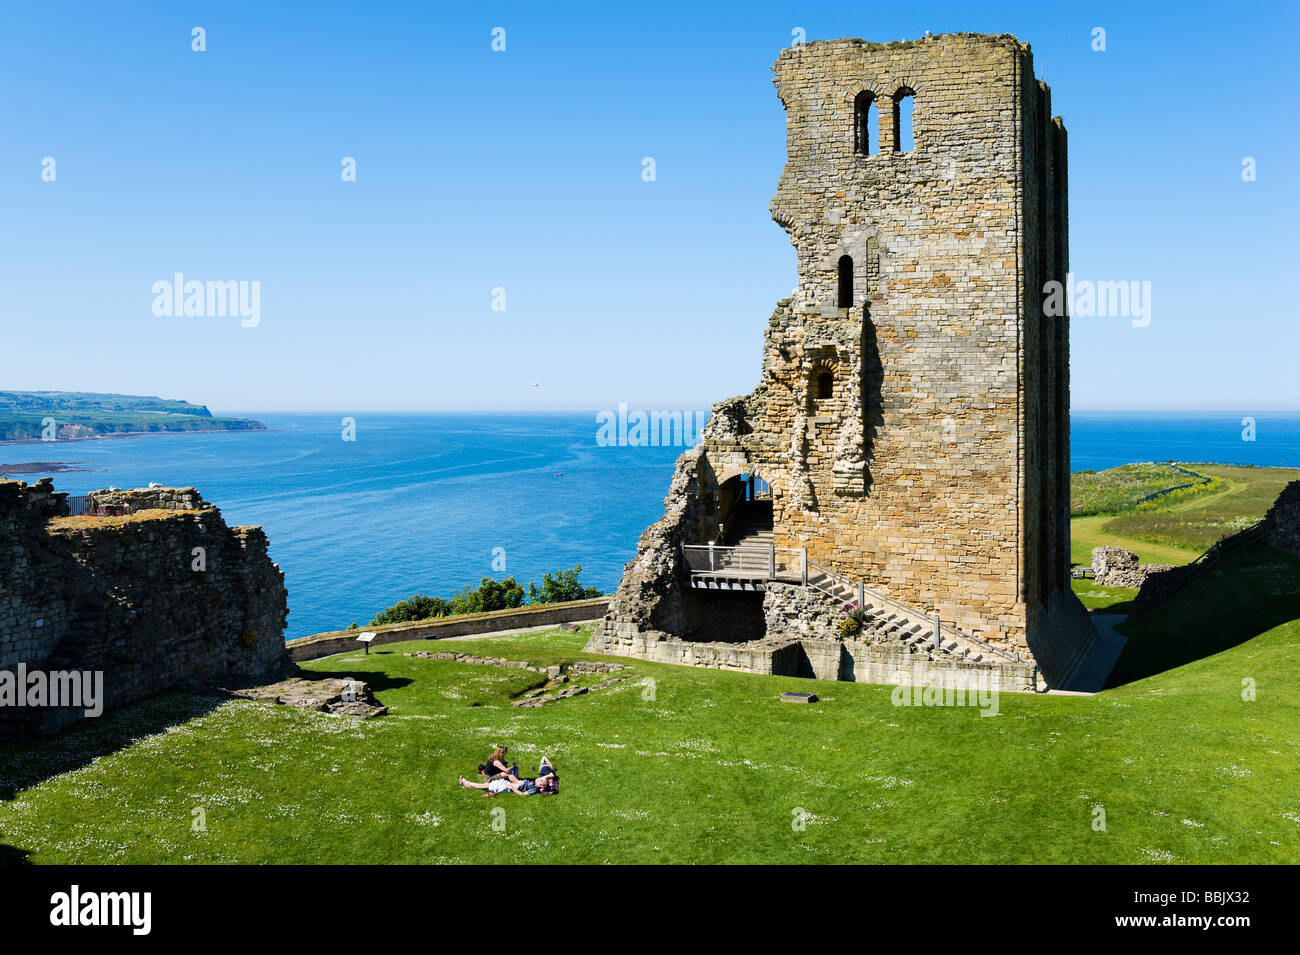 View over the Keep and North Bay from inside the Castle, Scarborough, East Coast, North Yorkshire, England - Stock Image